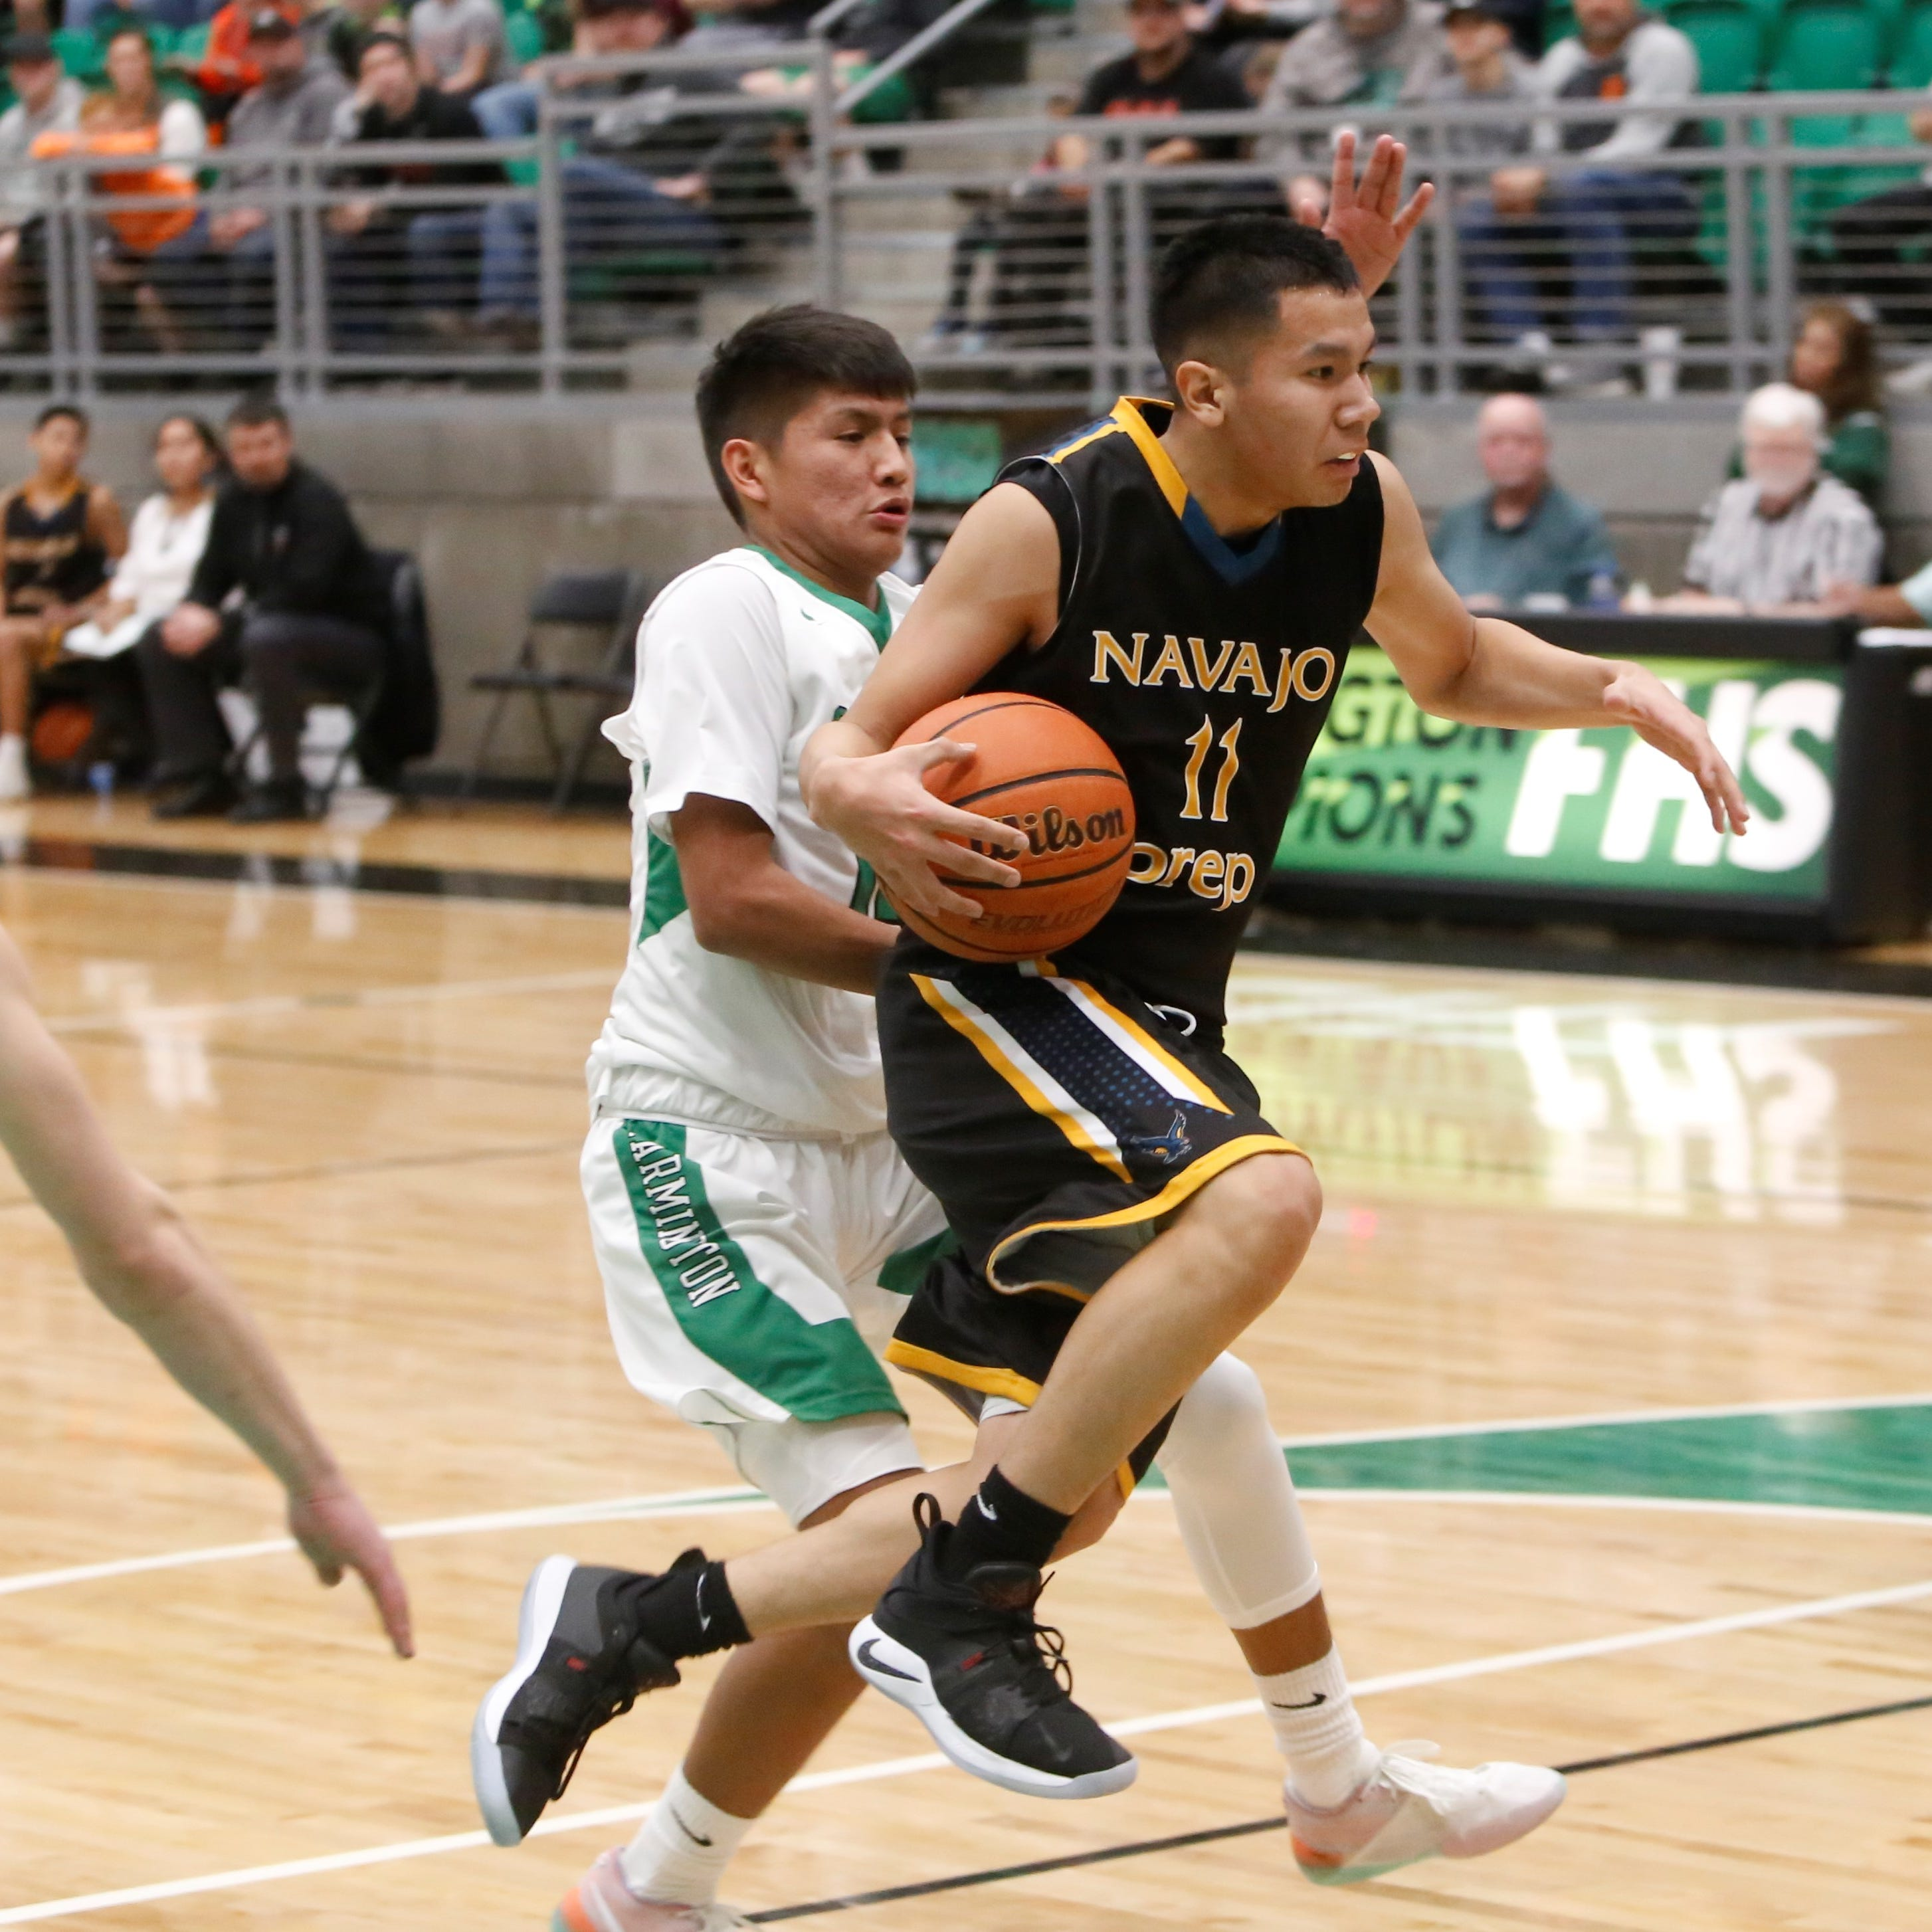 Prep, Newcomb boys move up in rankings